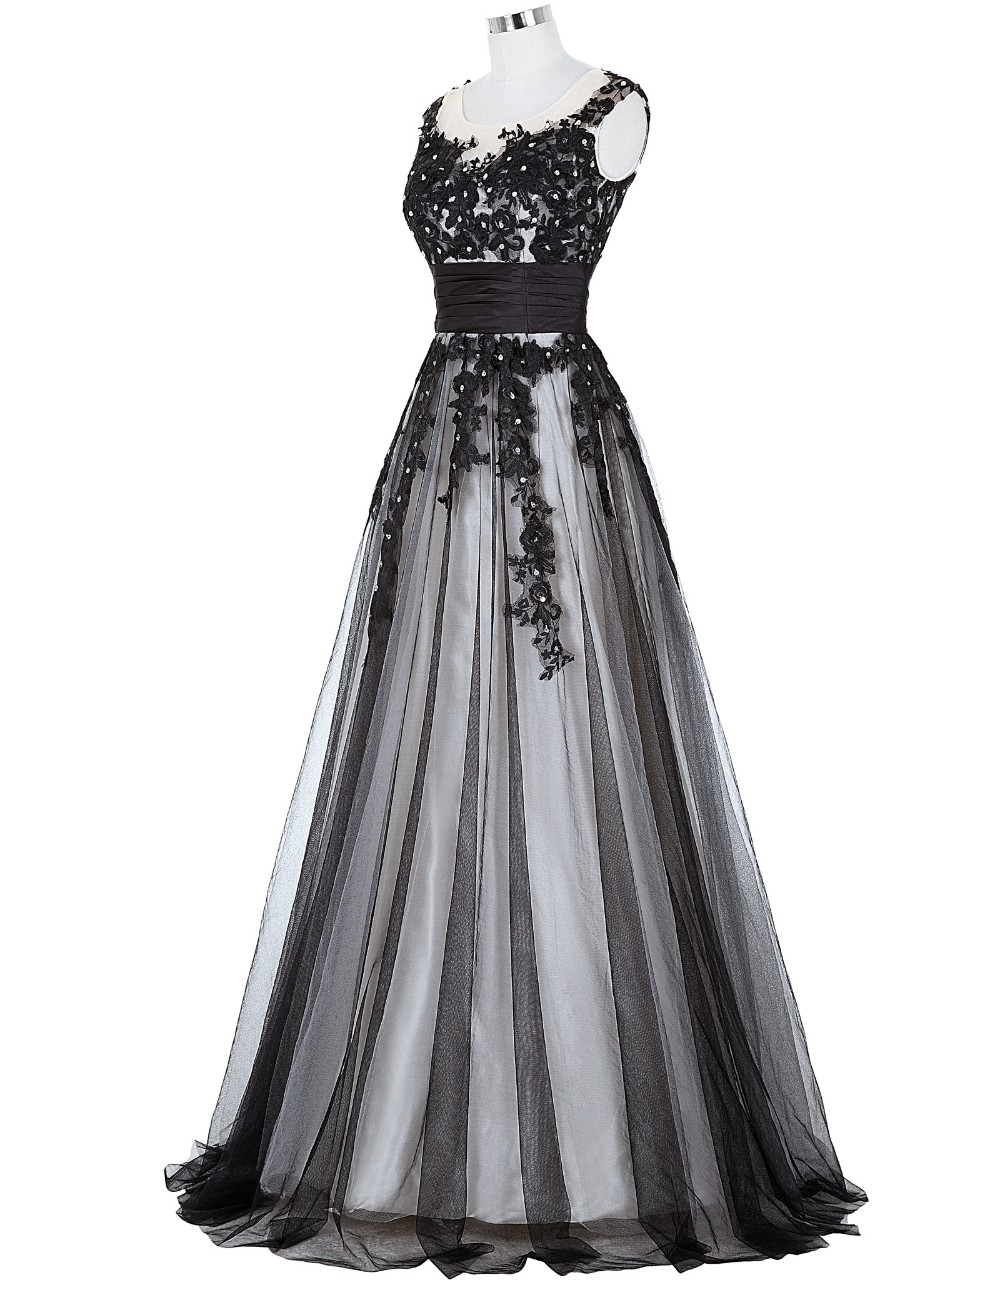 Grace Karin Long Prom Dress 2018 Elegant Black Appliques Sleeveless Soft Tulle Satin Real Picture Robes De Soiree Prom Dresses 8